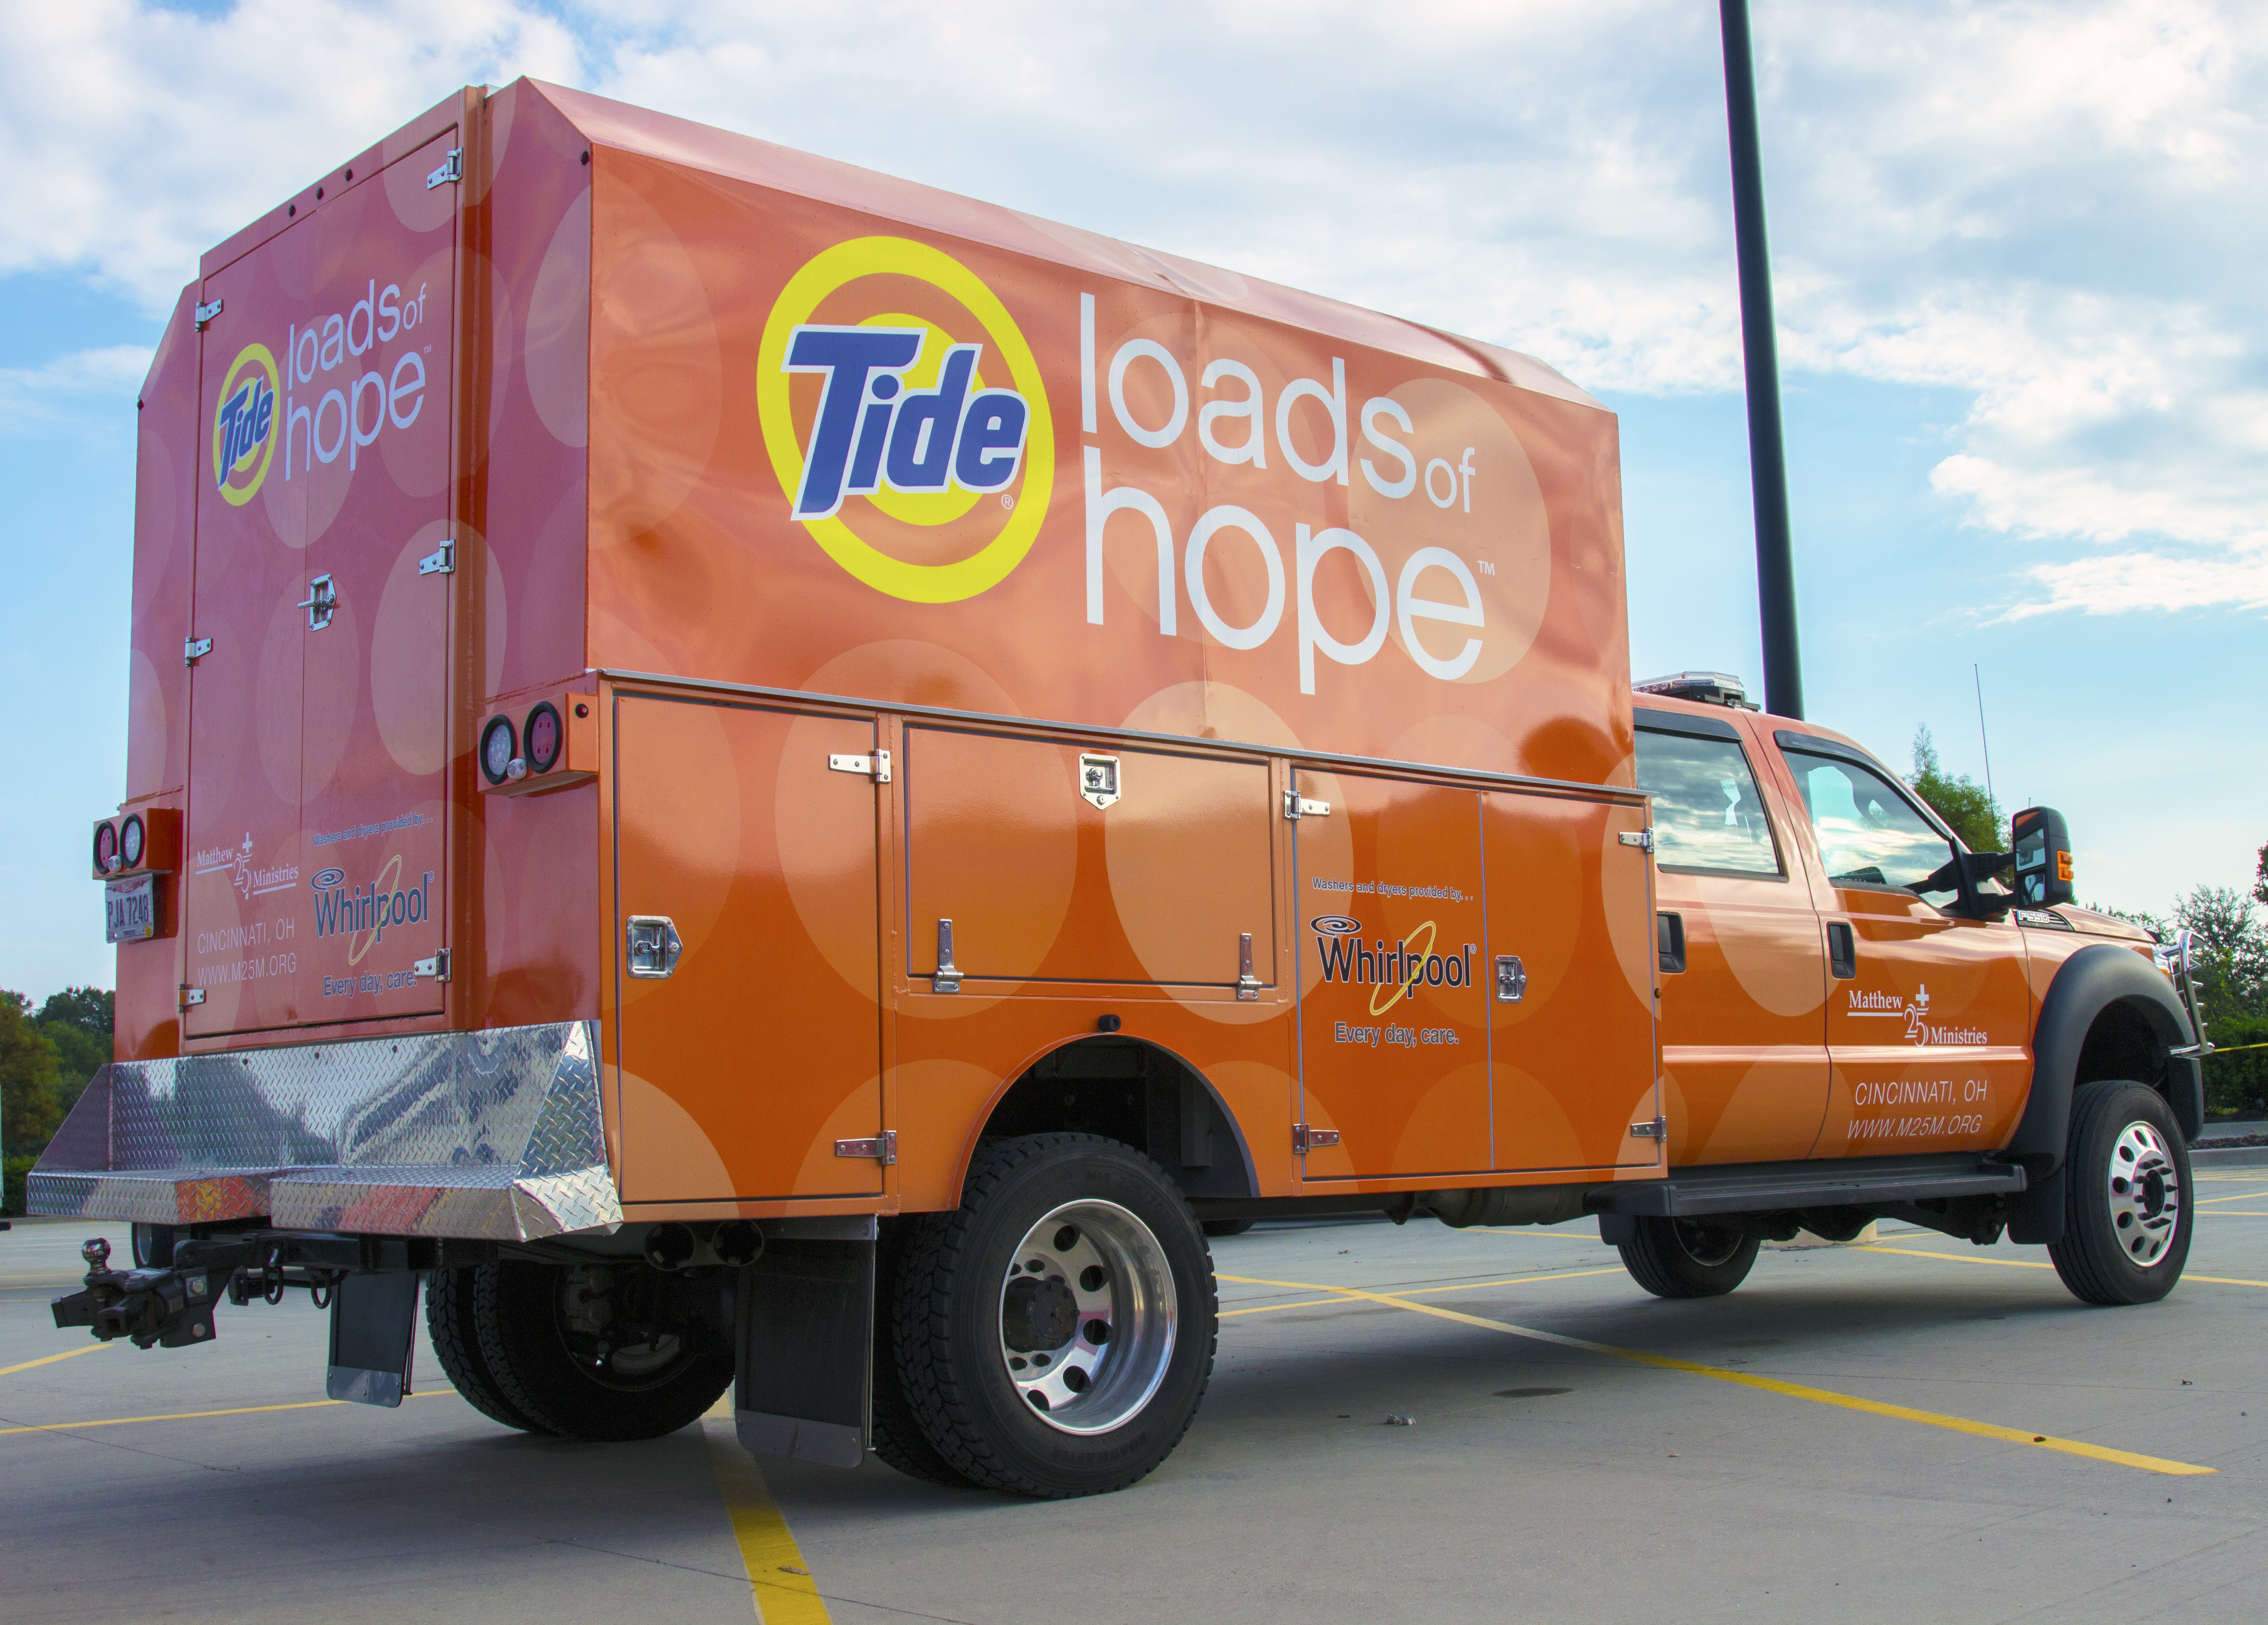 Procter & Gamble Brings Mobile Relief to Residents Affected by Hurricane Matthew with P&G Product Kits and Tide Loads of Hope (Photo: Business Wire)